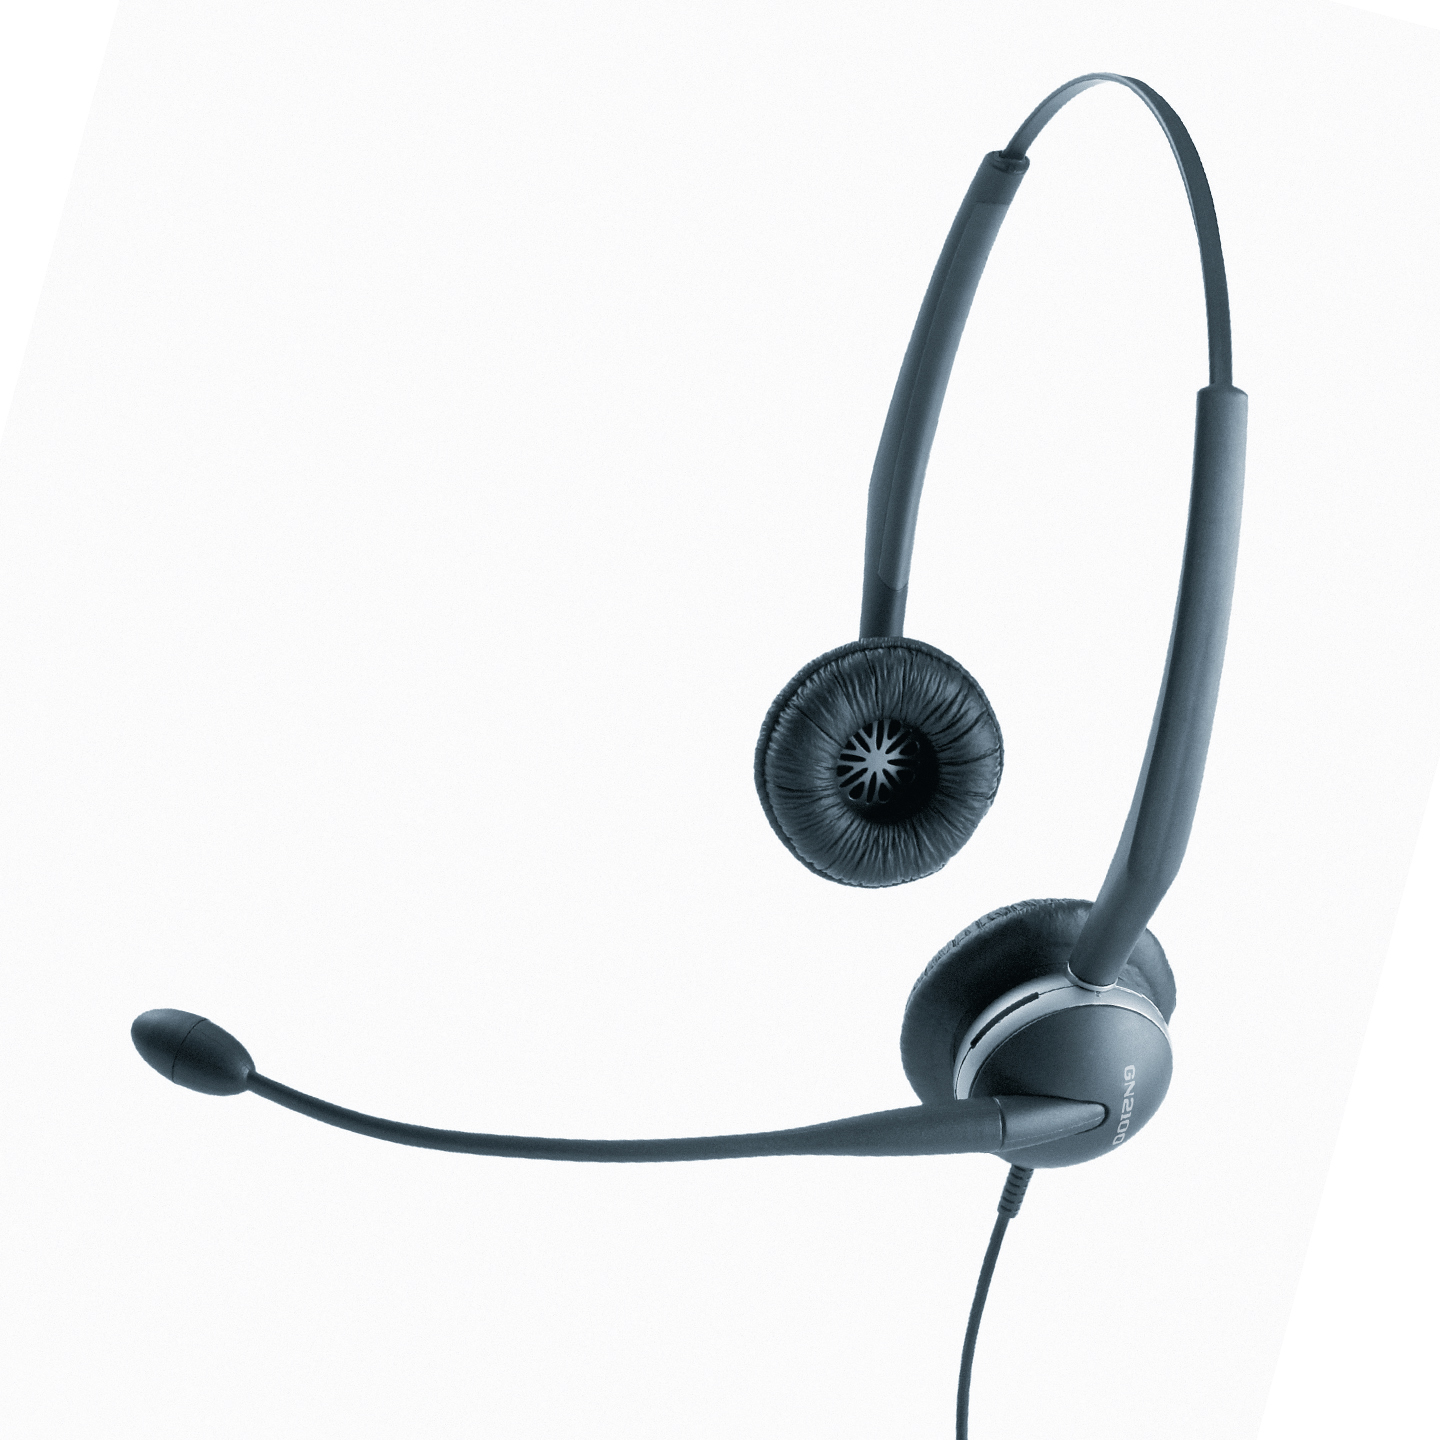 Wired Headset Jabra Biz 2400 Duo Wb Balance: Wired Headset, Jabra GN2125 Duo, Noise Canceling